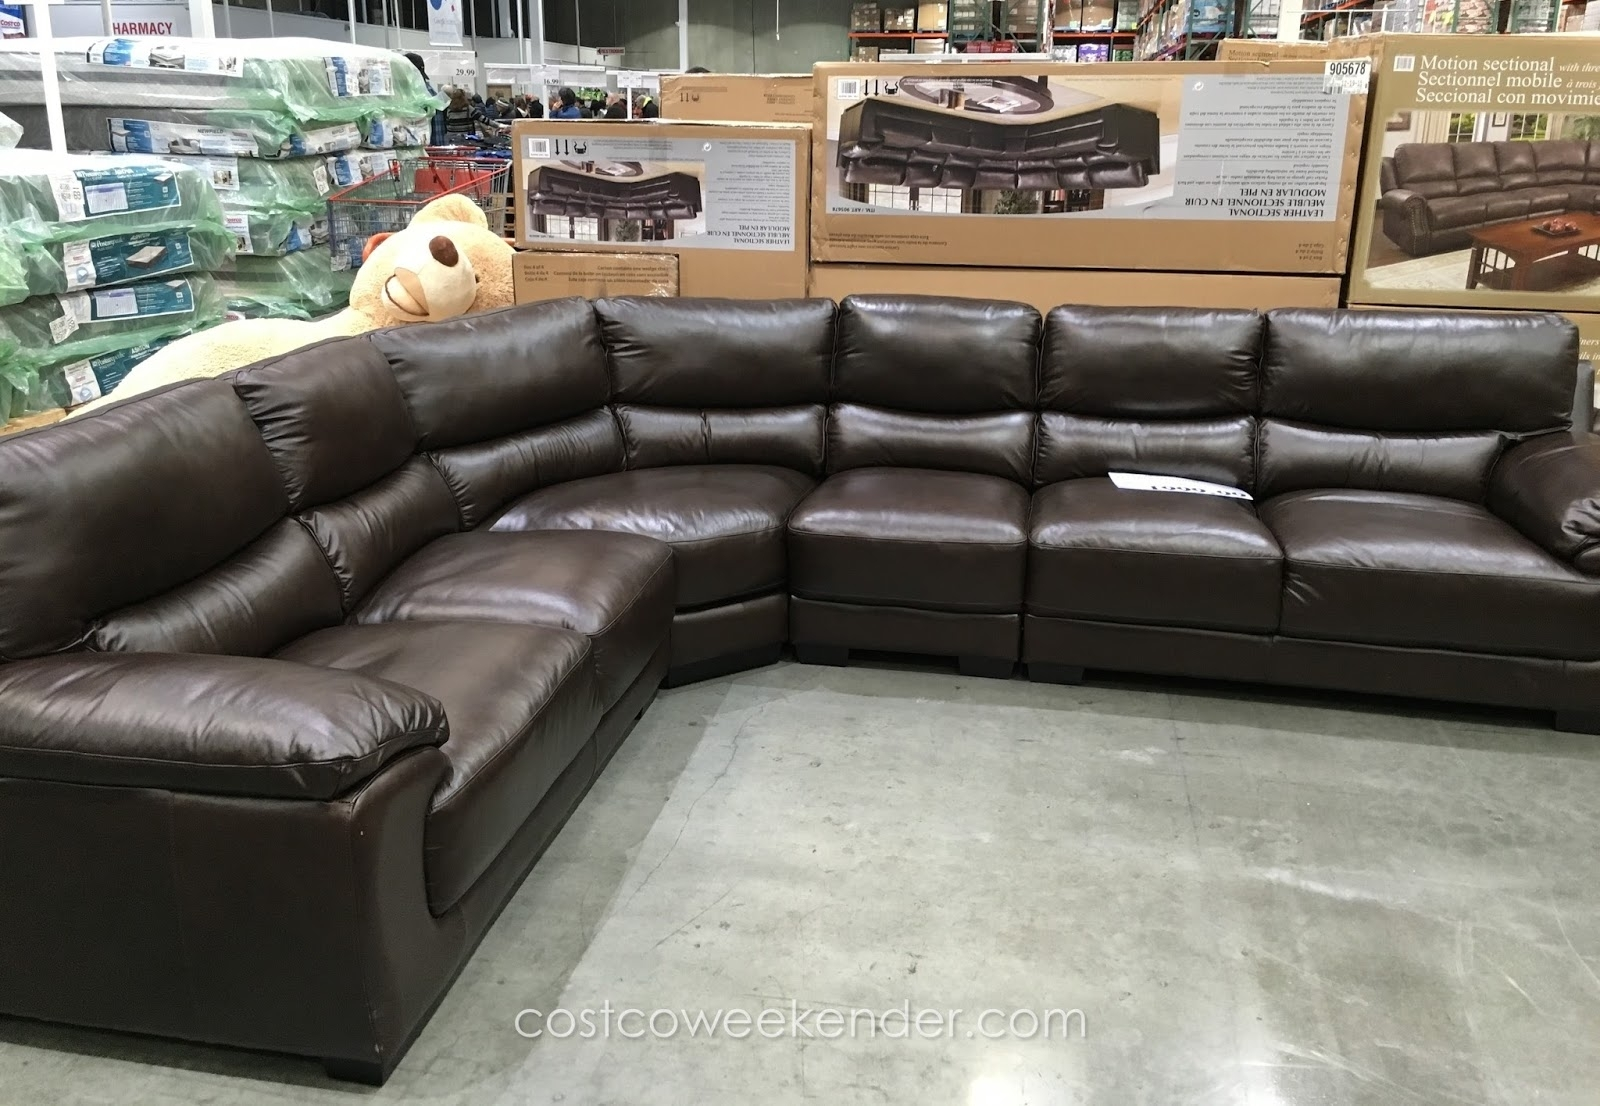 Marks & Cohen Colton Leather Sectional | Costco Weekender For Cohen Down 2 Piece Sectionals (View 9 of 25)